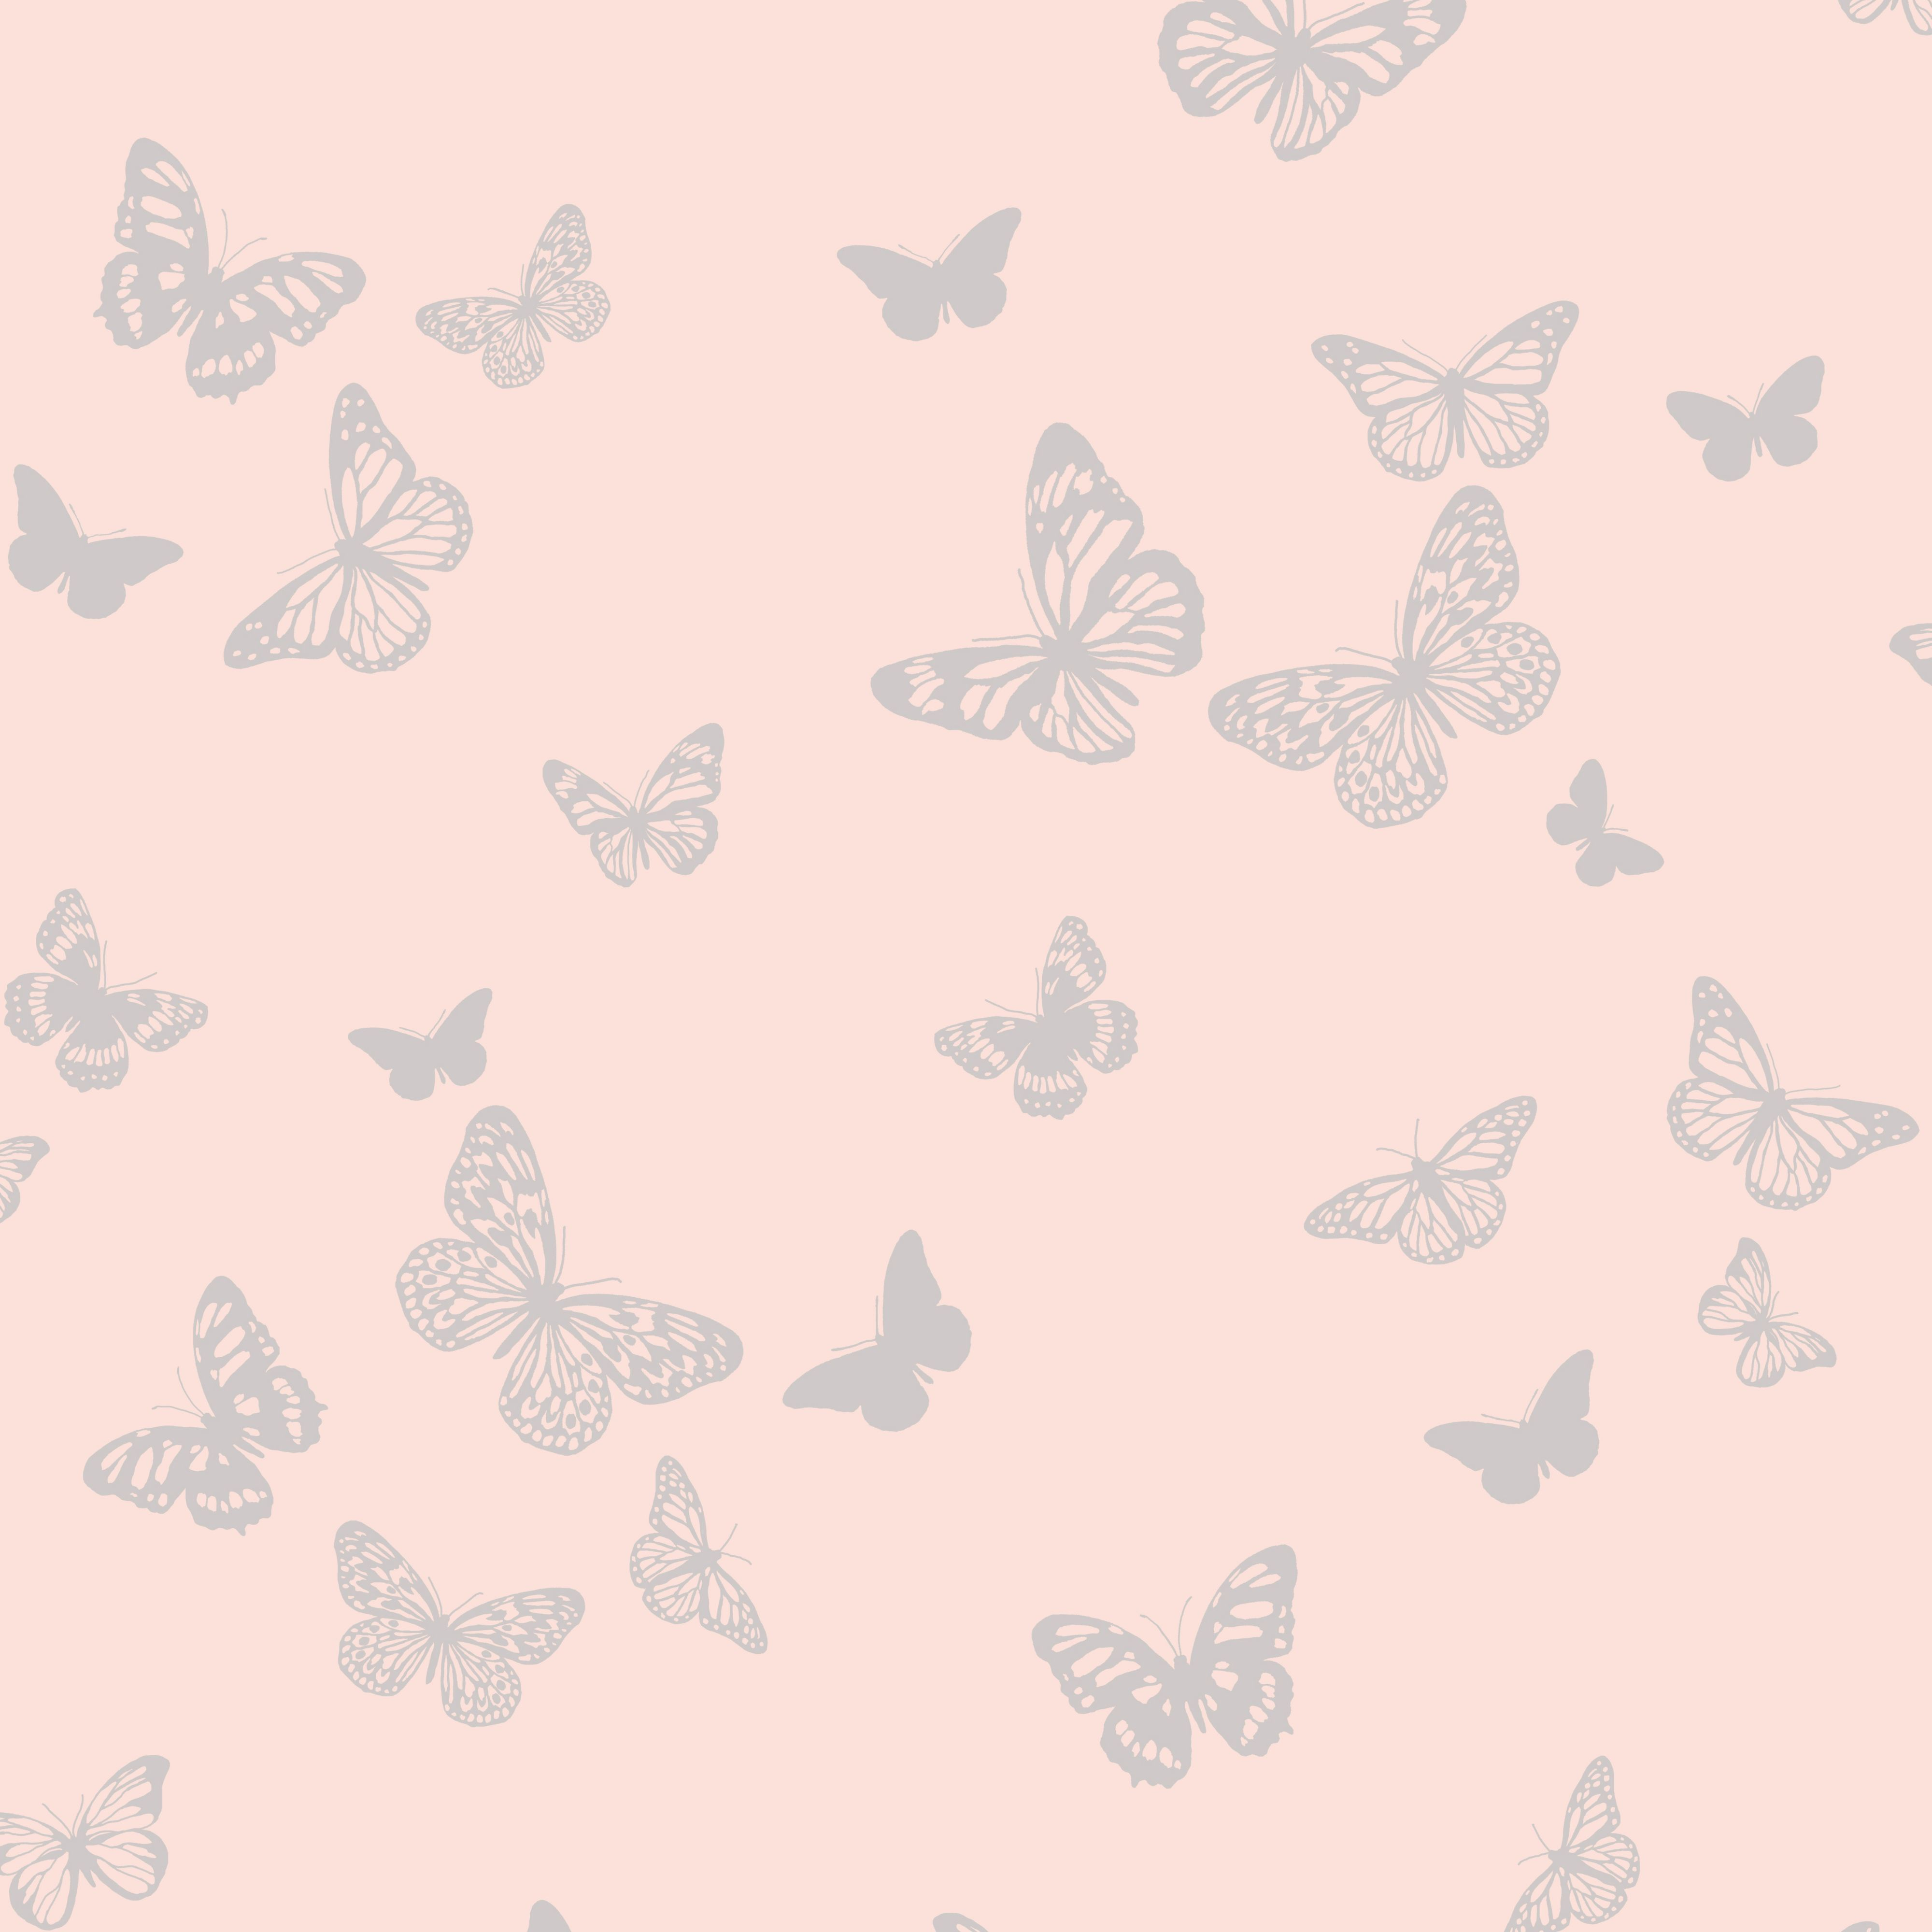 Pink Butterfly Wallpapers Top Free Pink Butterfly Backgrounds Wallpaperaccess wallpaperaccess